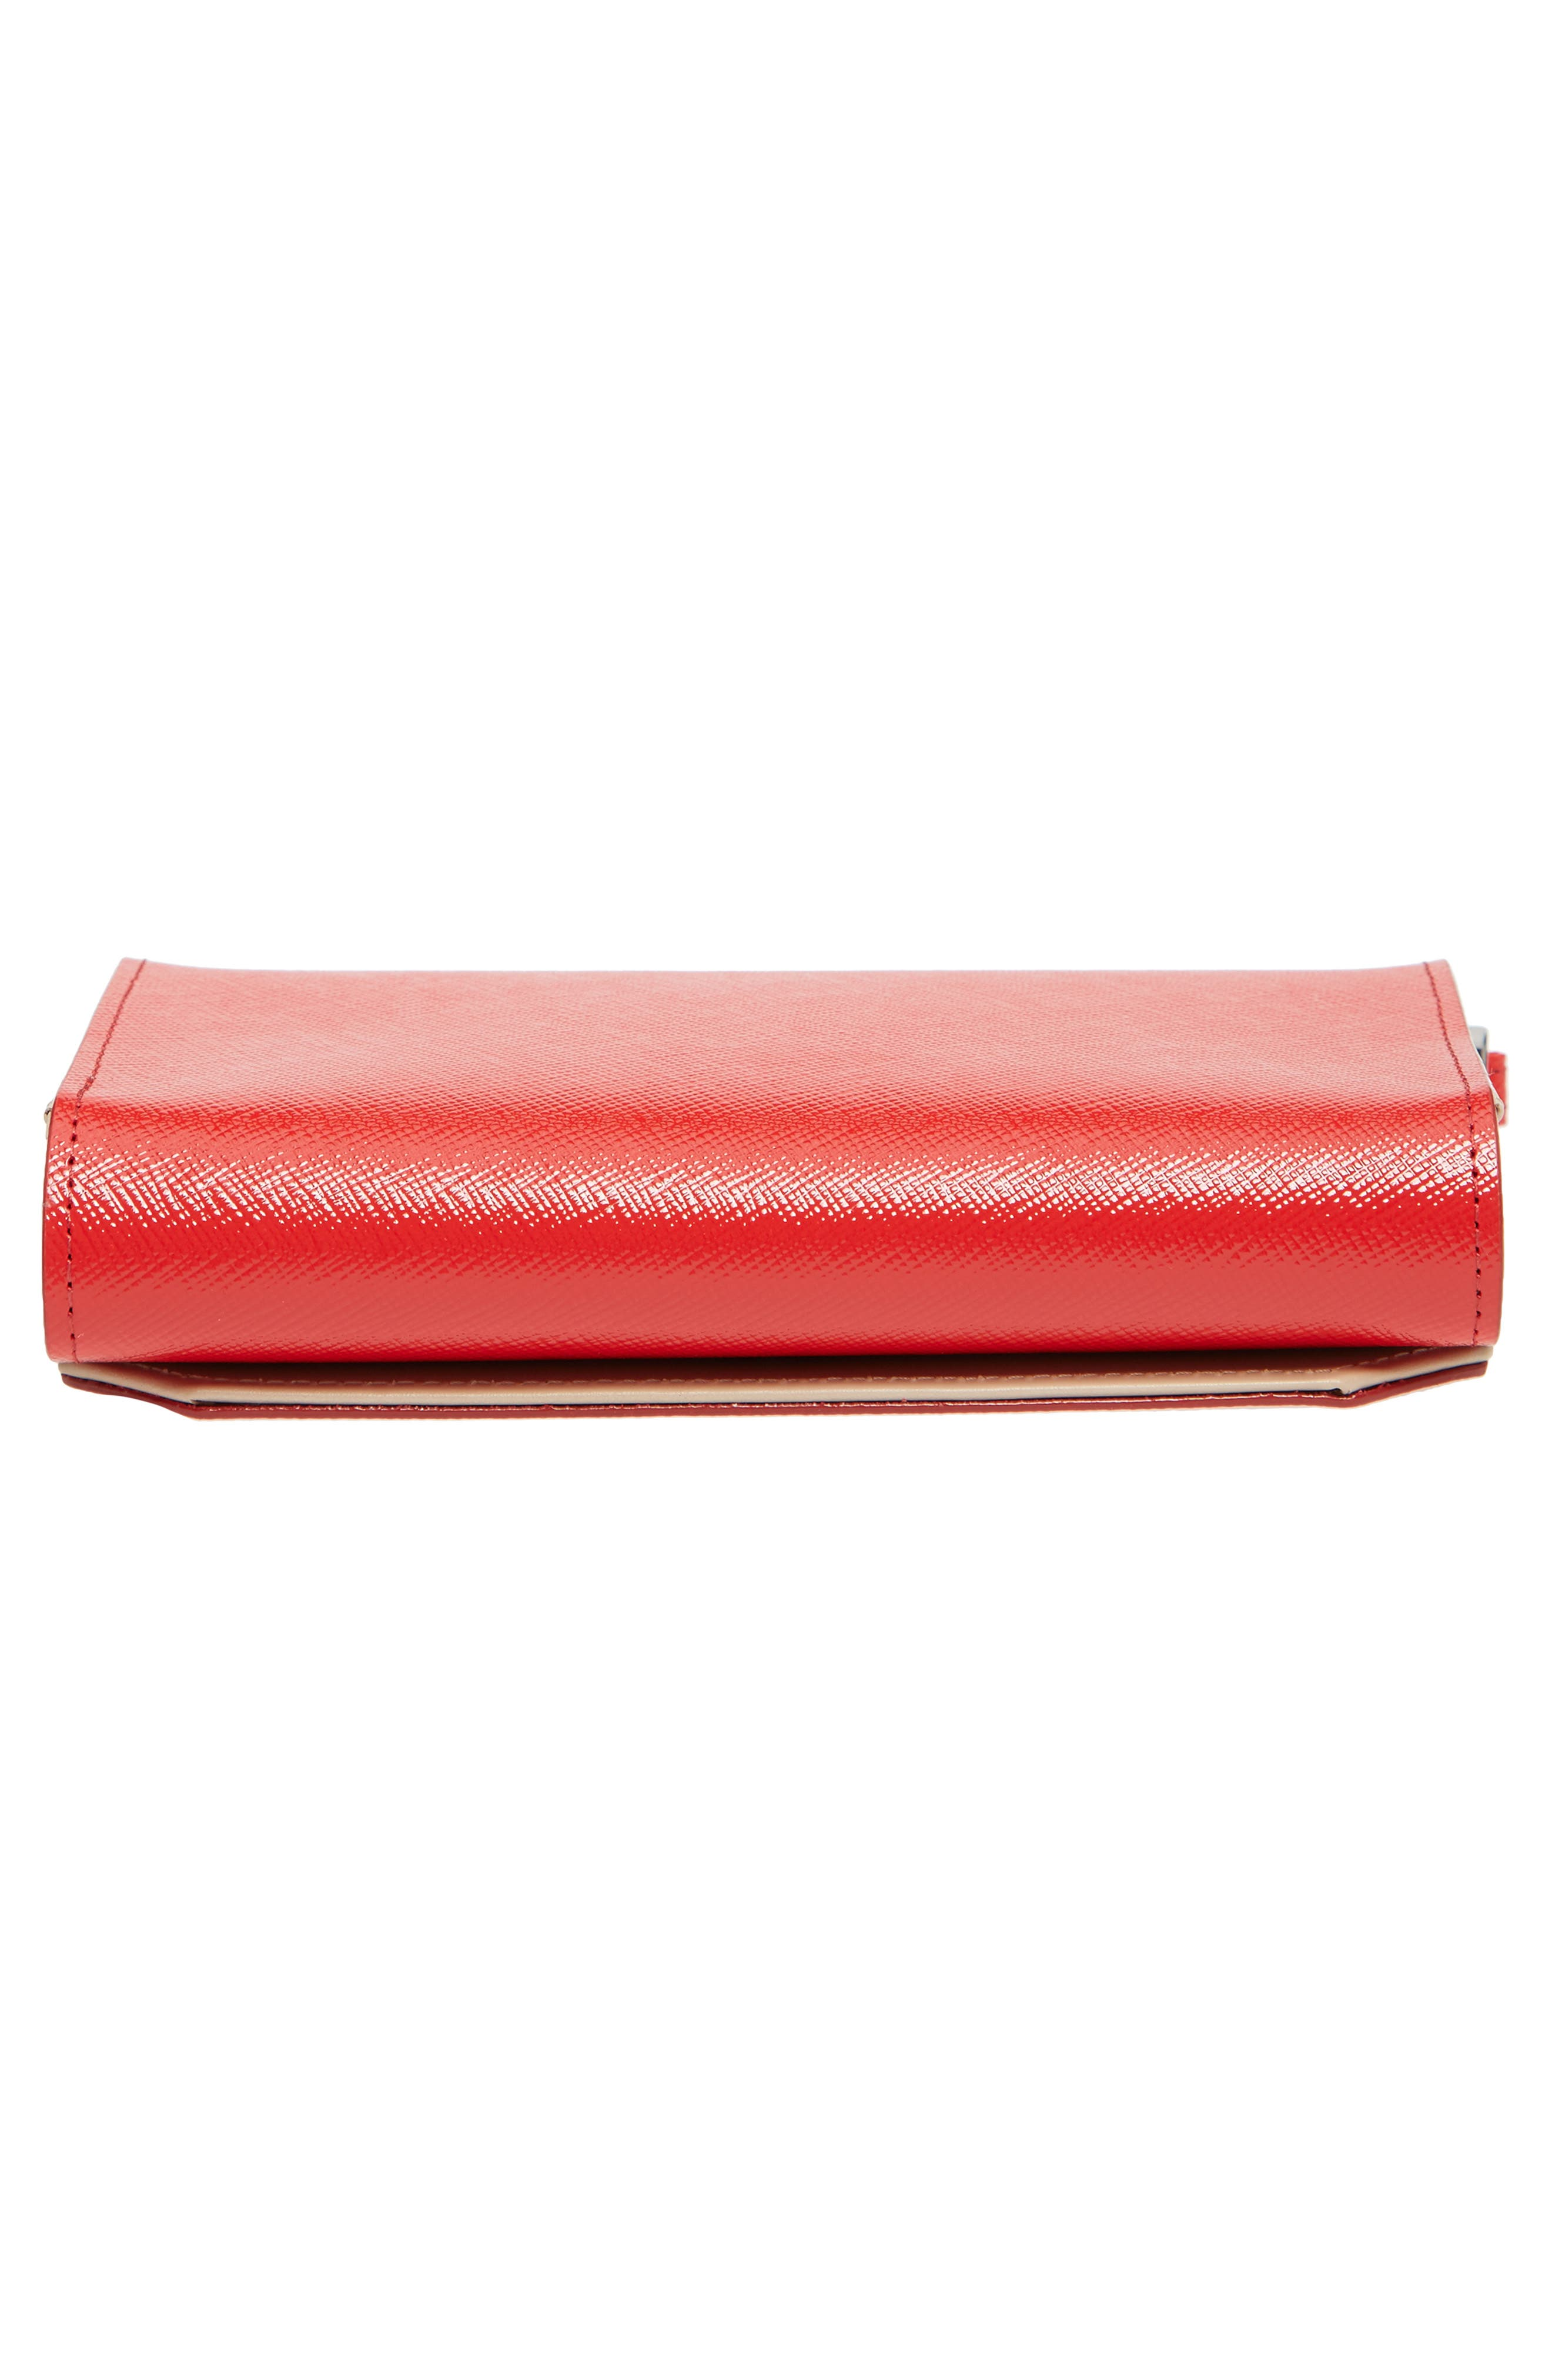 Trifold Leather Wallet,                             Alternate thumbnail 33, color,